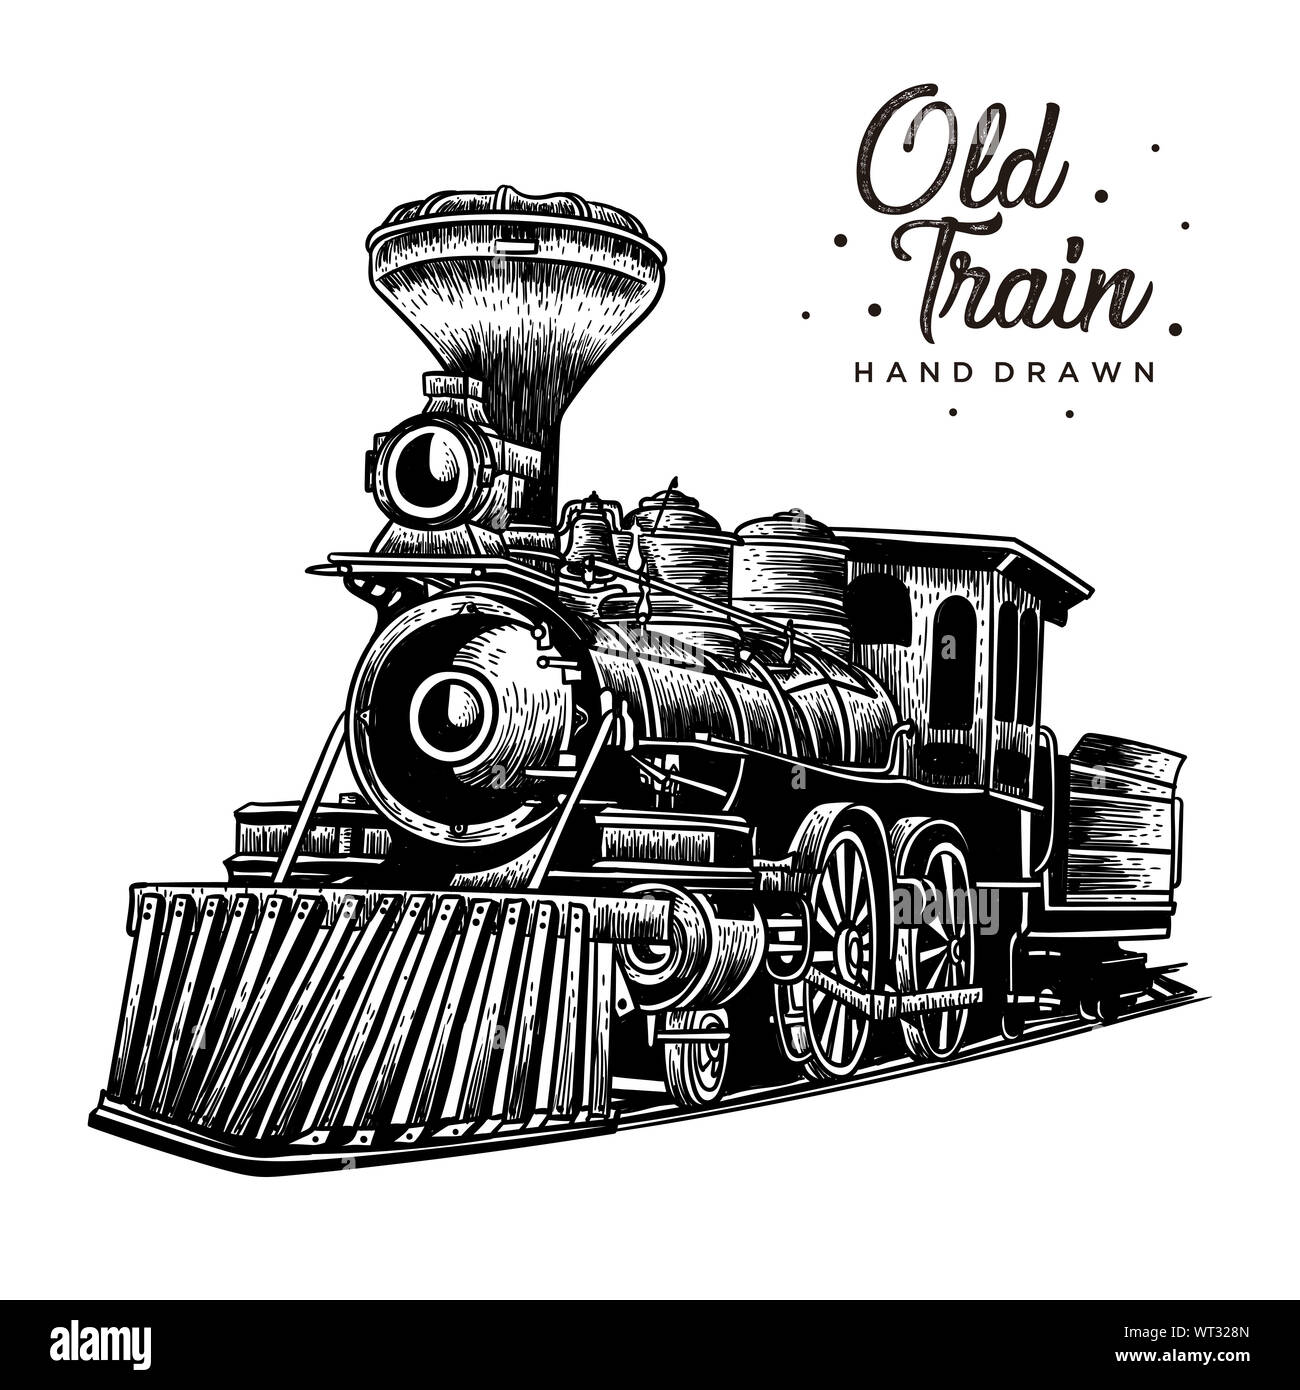 Old Train Hand Drawn Vintage Logo Rustic Style Stock Photo Alamy